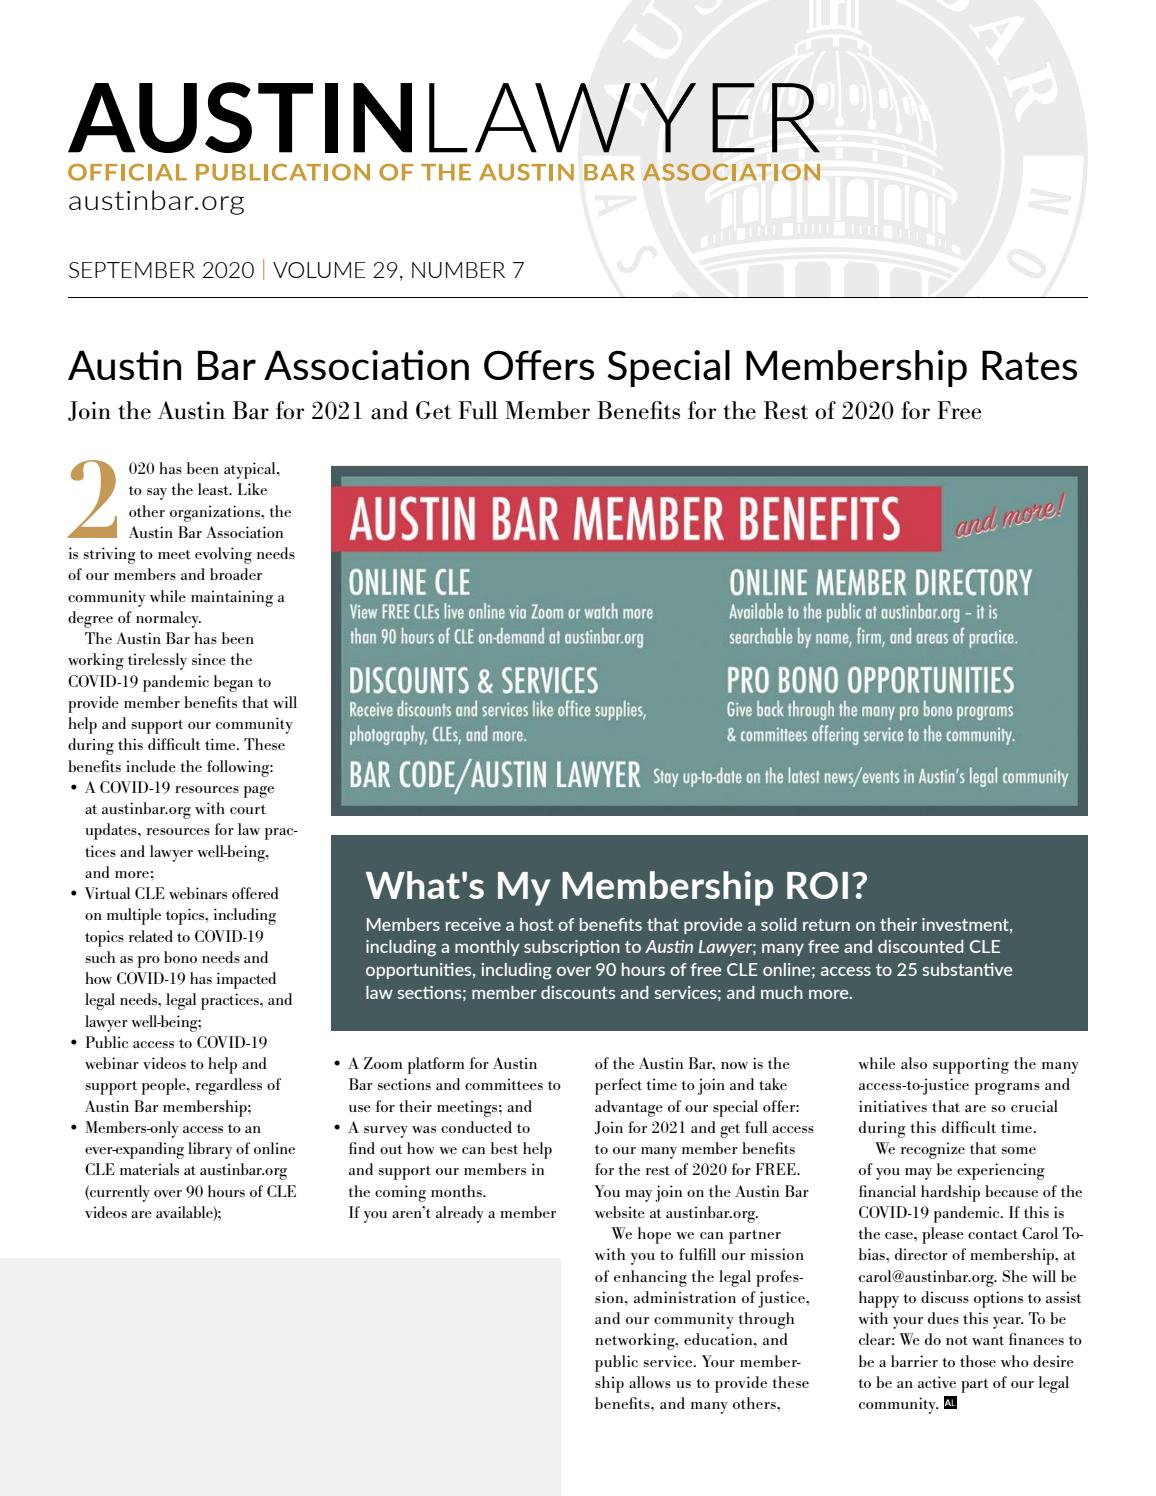 Austin Lawyer September 2020 By Austin Bar Association Issuu